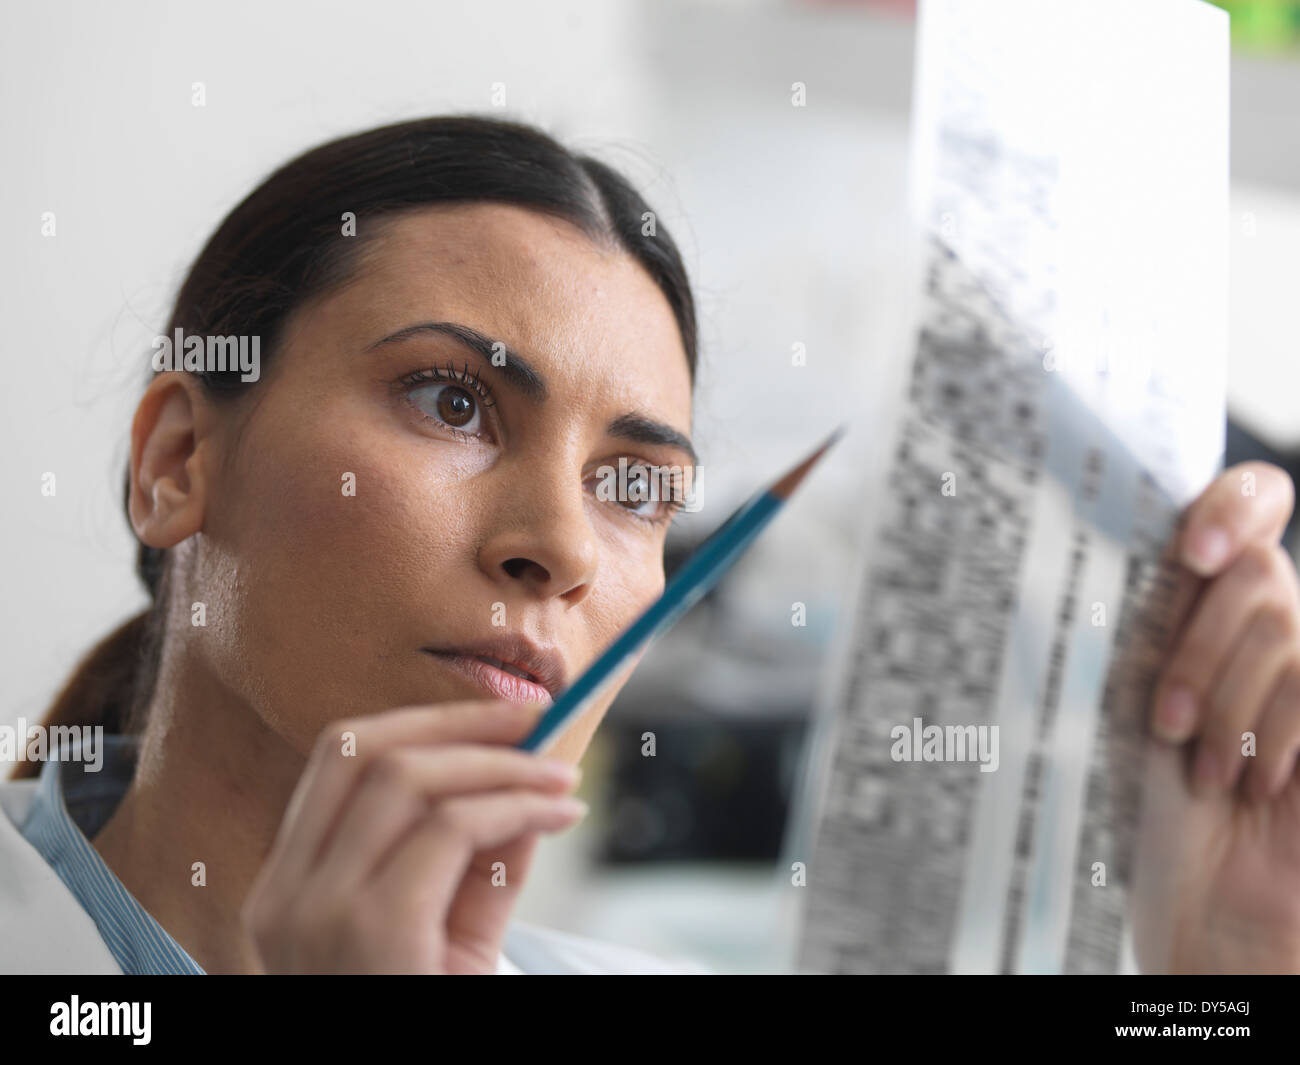 Female scientist examining DNA gel in laboratory for genetic research - Stock Image